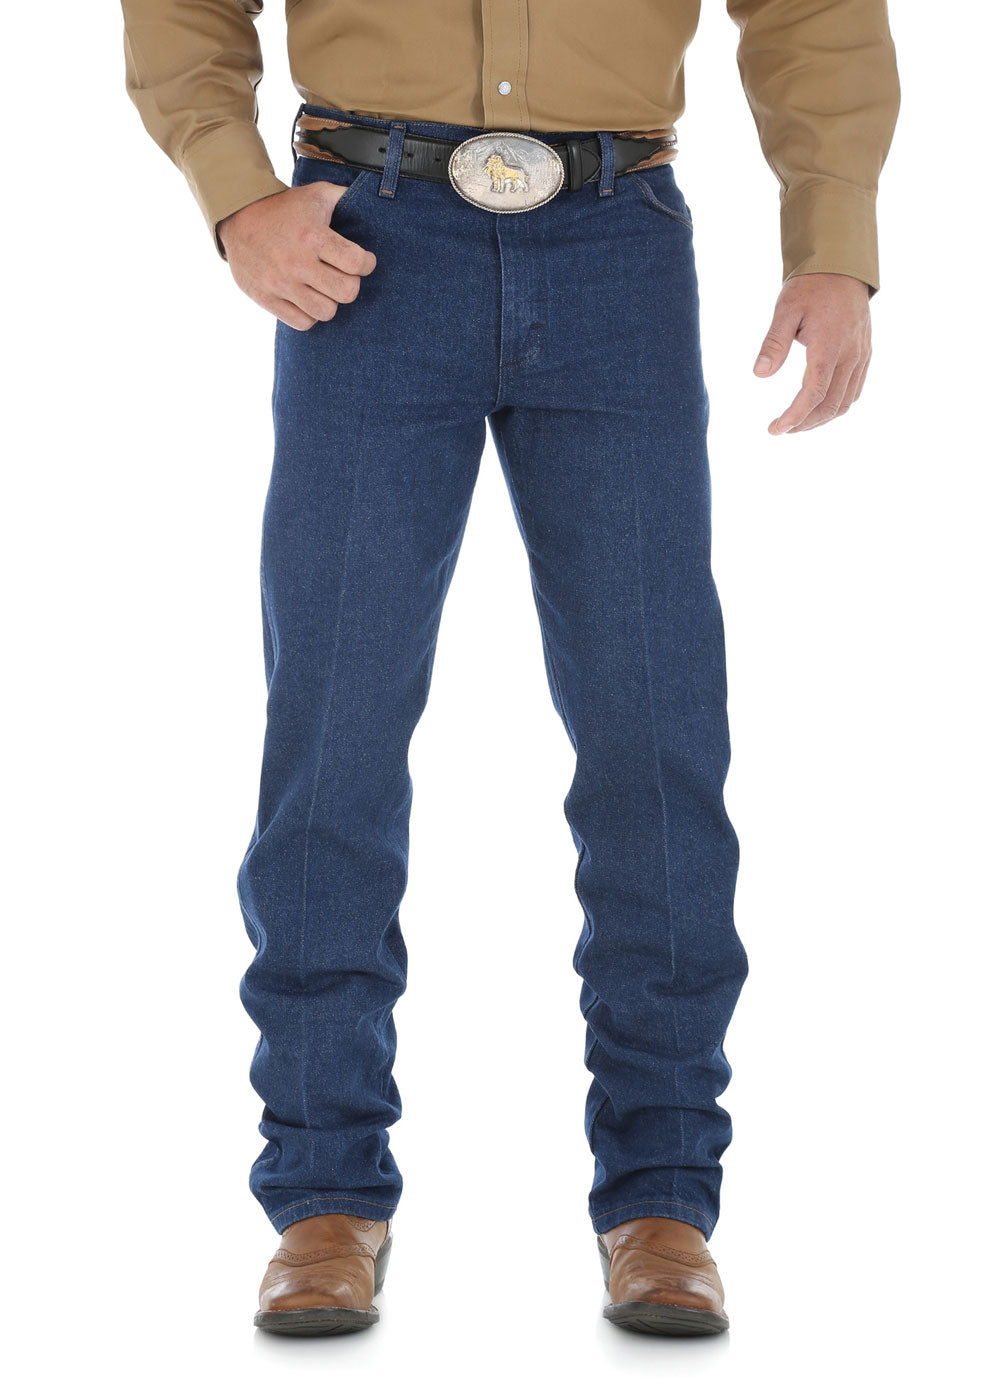 MENS COWBOY CUT ORIGINAL FIT JEAN 34